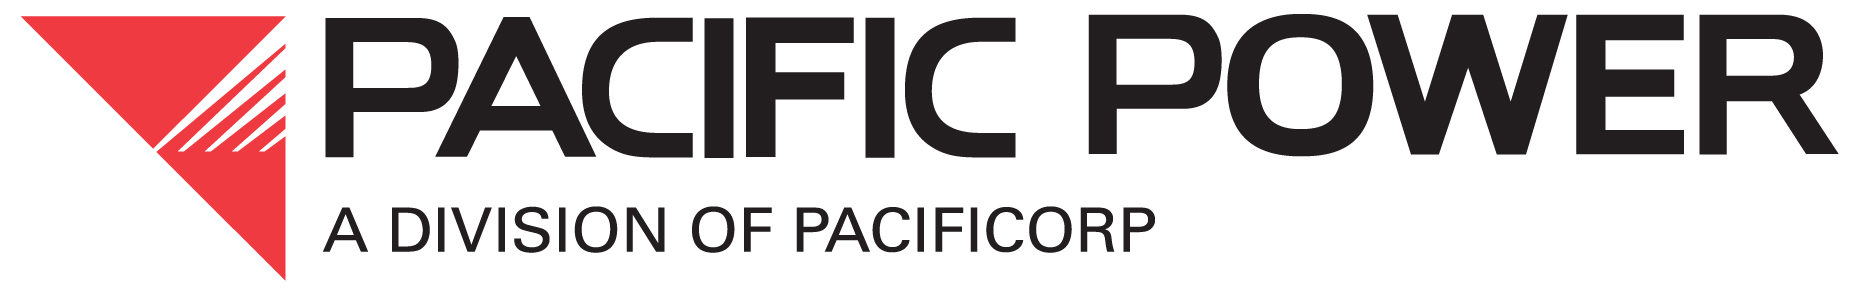 Pacific Power 2.jpg